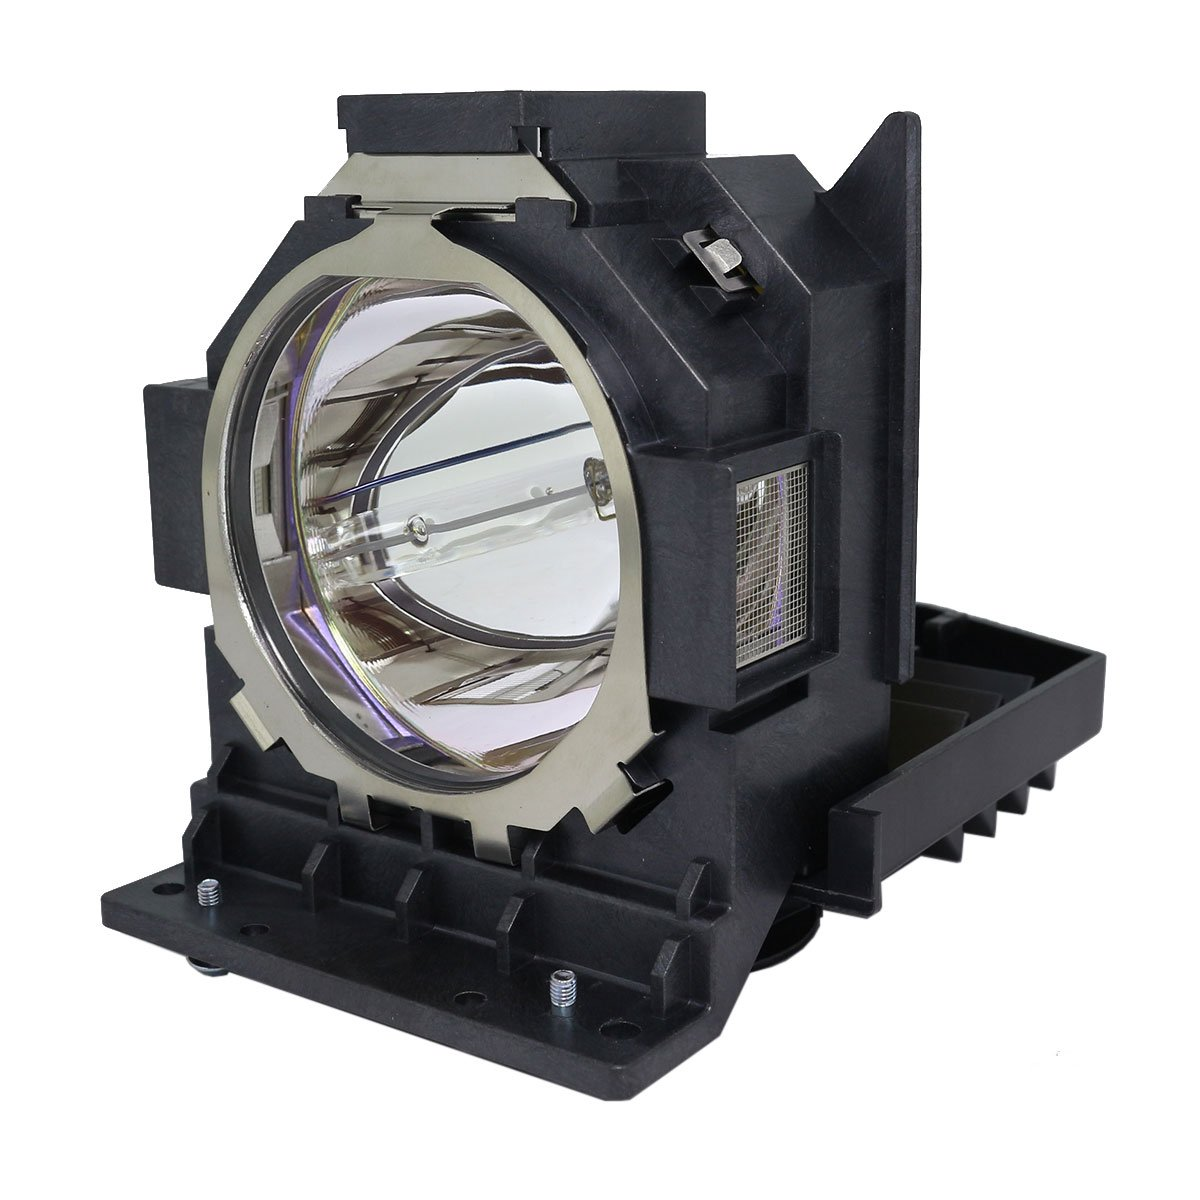 Replacement Lamp Housing Christie 003-005160-01